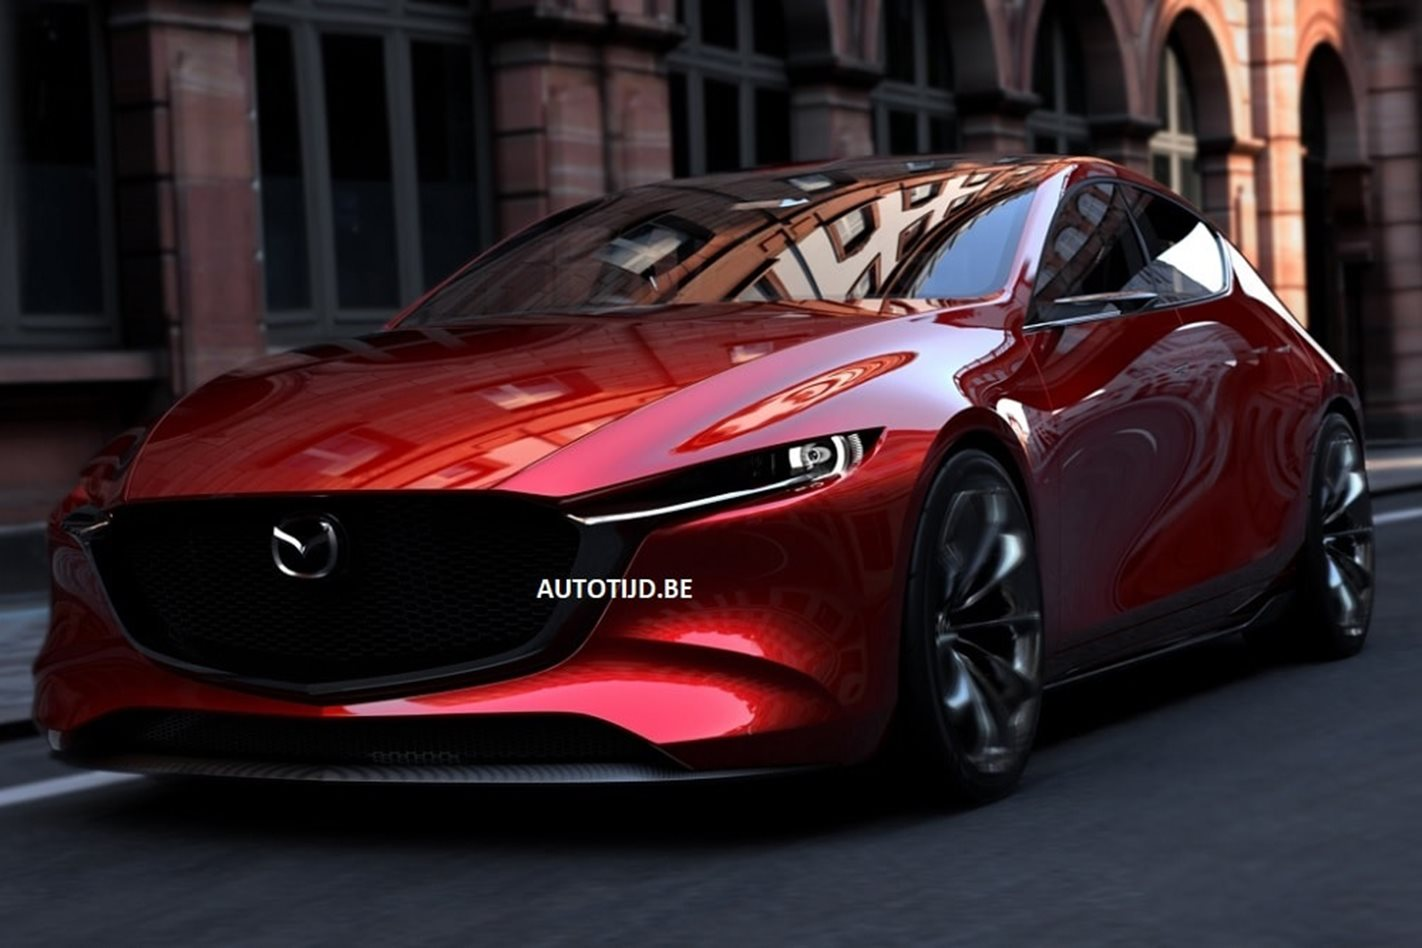 Tokyo Motor Show Mazda Images Leaked Ahead Of Official - Tokyo car show 2018